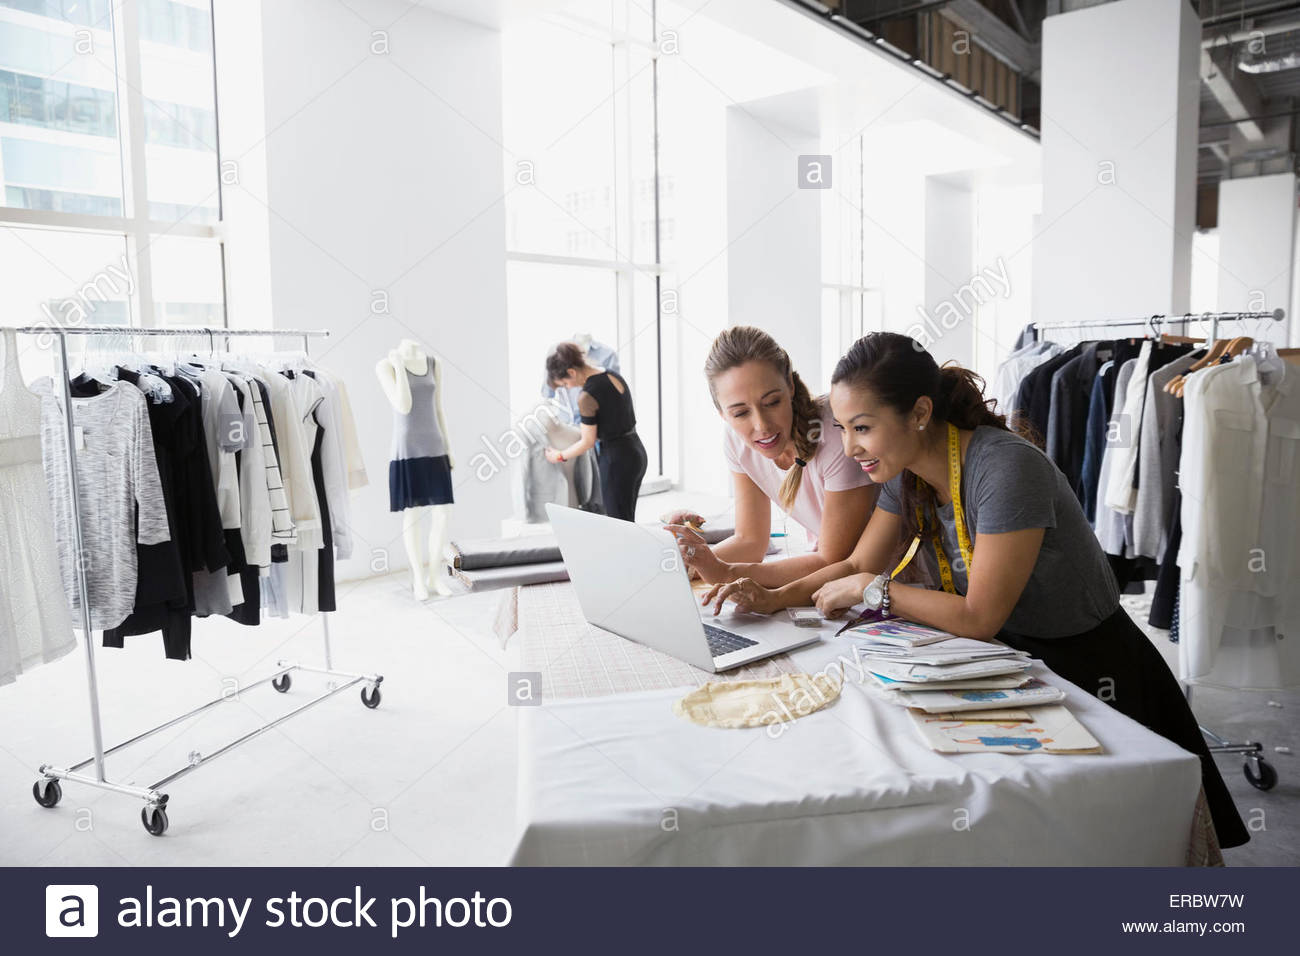 Fashion designers at laptop with sewing patterns - Stock Image